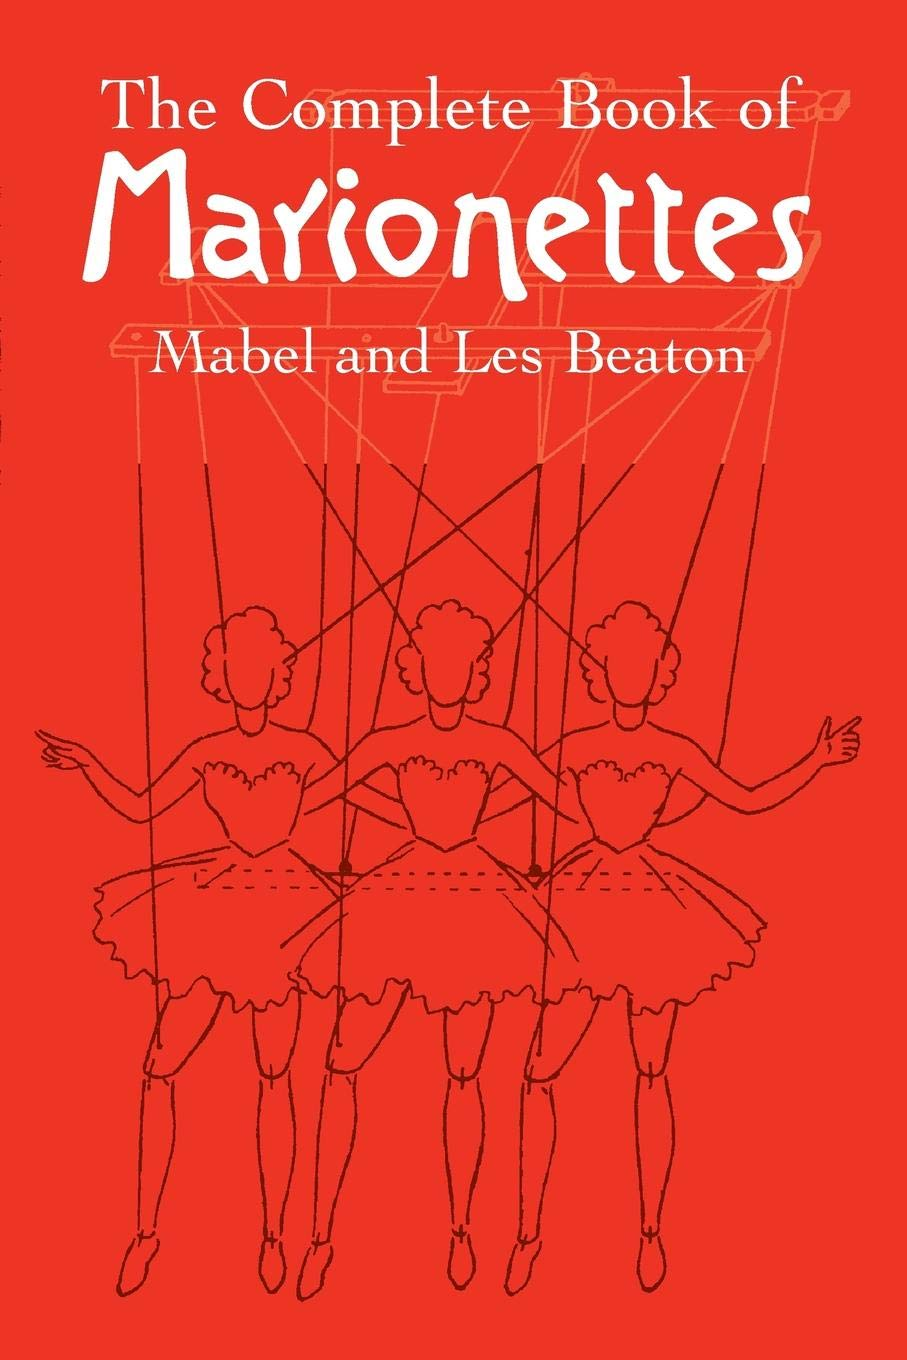 Amazon.com: The Complete Book of Marionettes (9780486440170): Mabel and Les  Beaton: Books